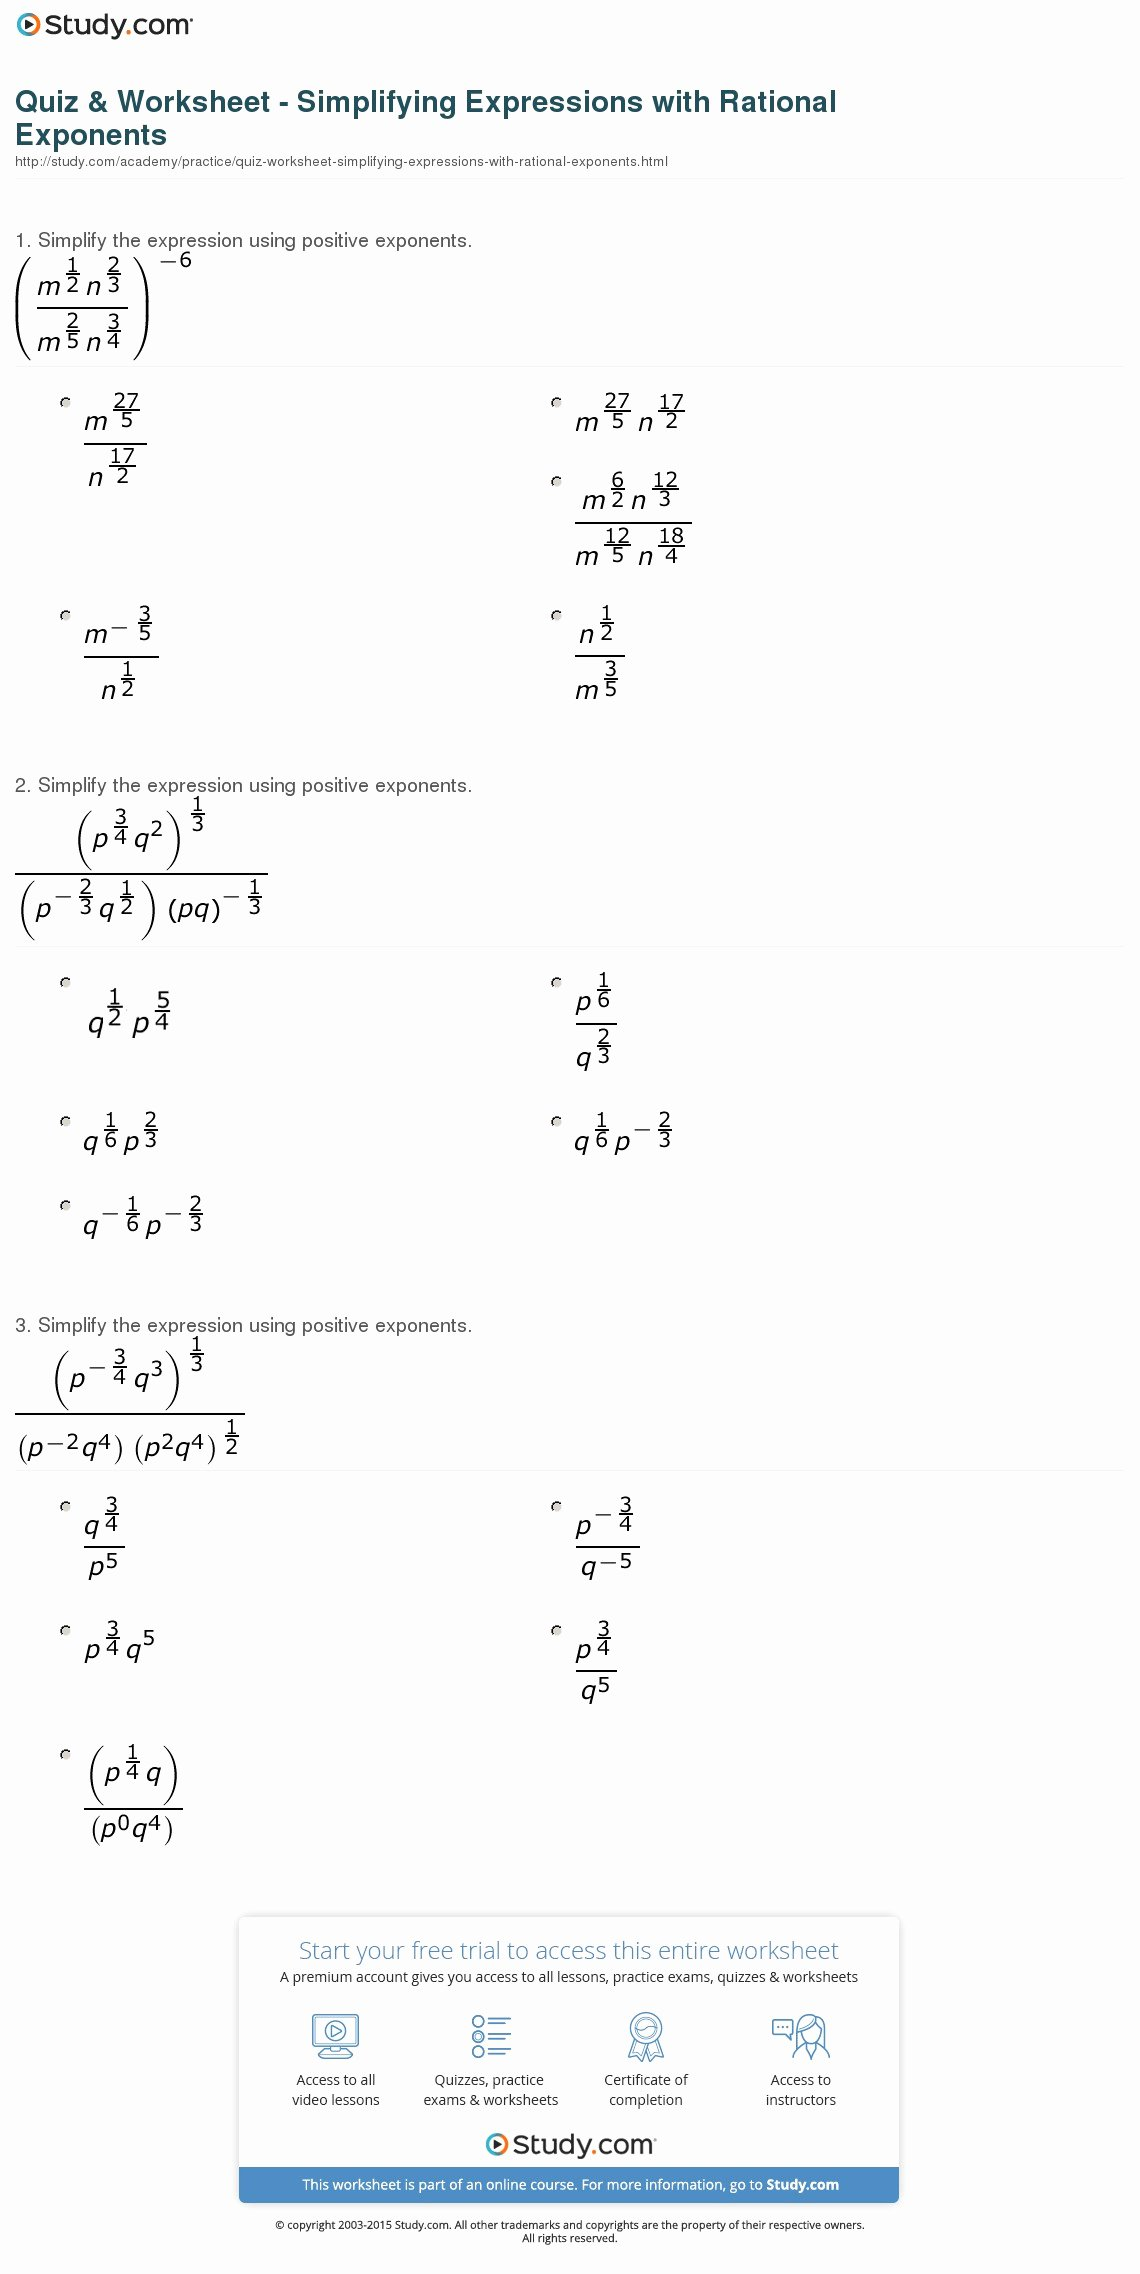 Simplifying Algebraic Expressions Worksheet Answers Unique Quiz & Worksheet Simplifying Expressions with Rational